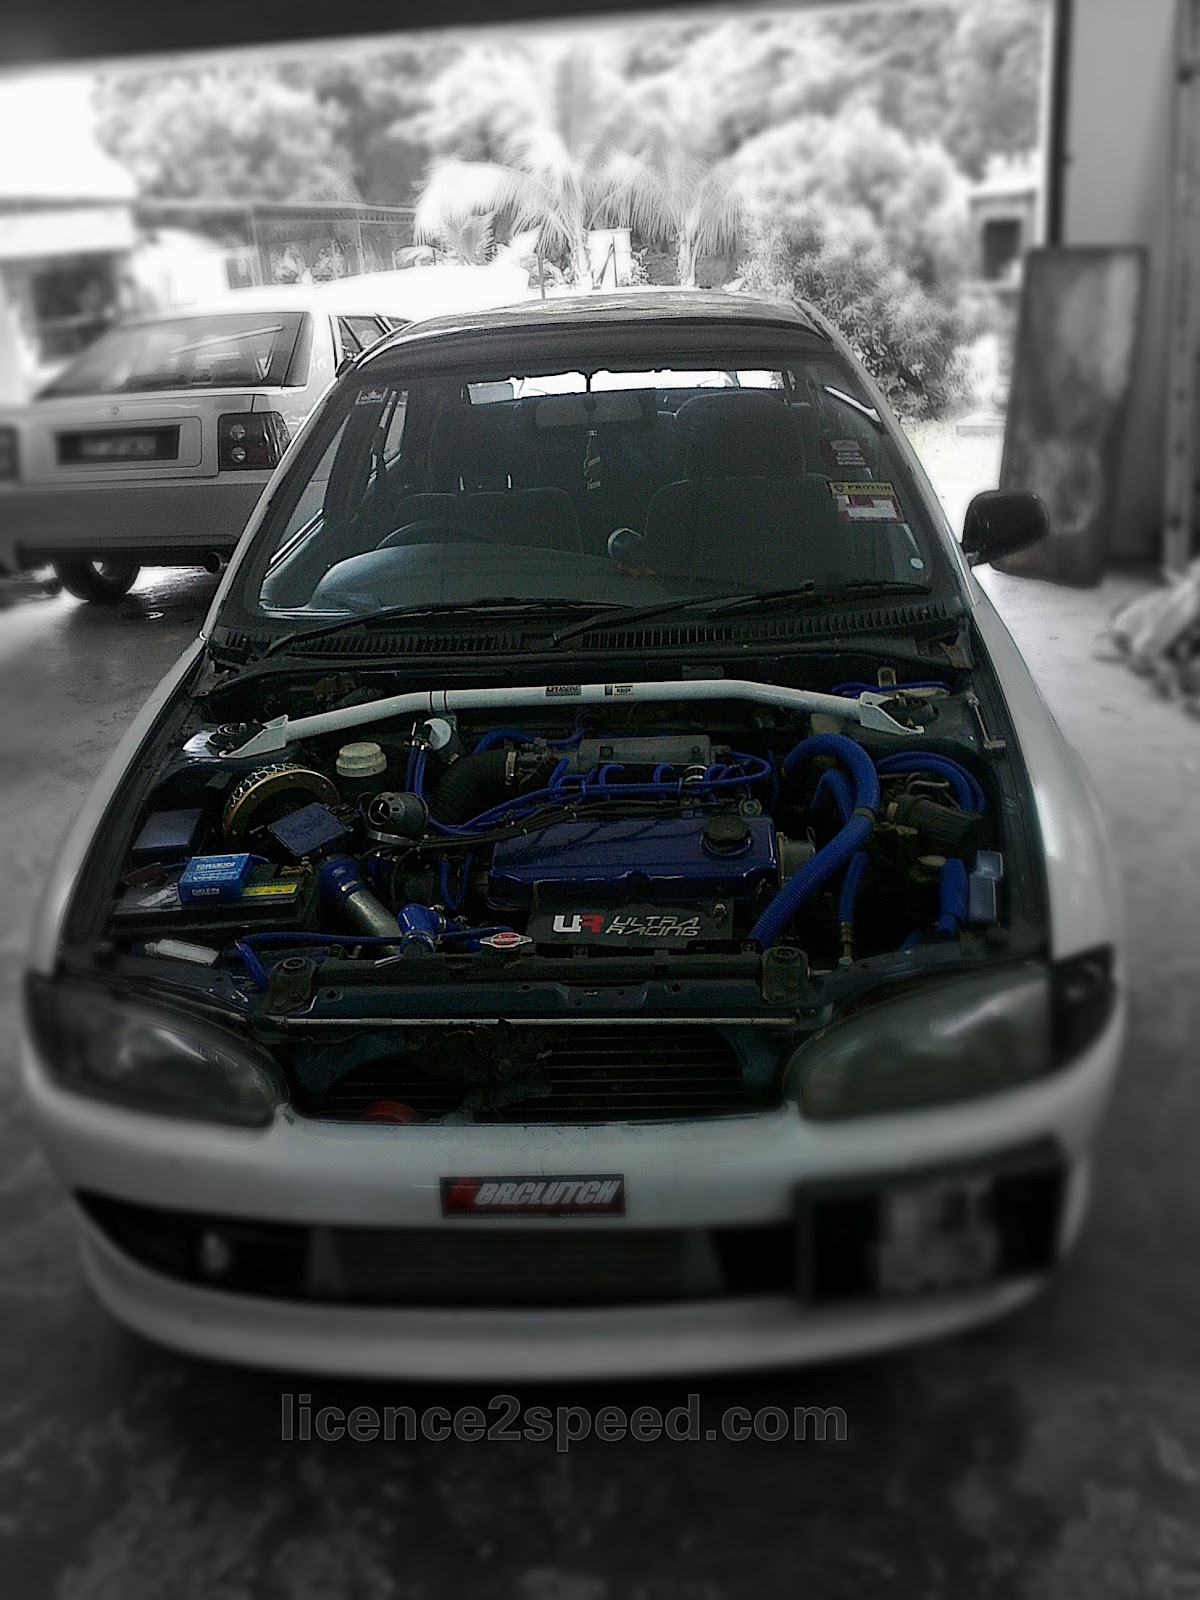 Licence To Speed For Malaysian Automotive My Project Car Budget Mitsubishi 4g92 Wiring Diagram Proton Wira 16 Bolt On Turbo